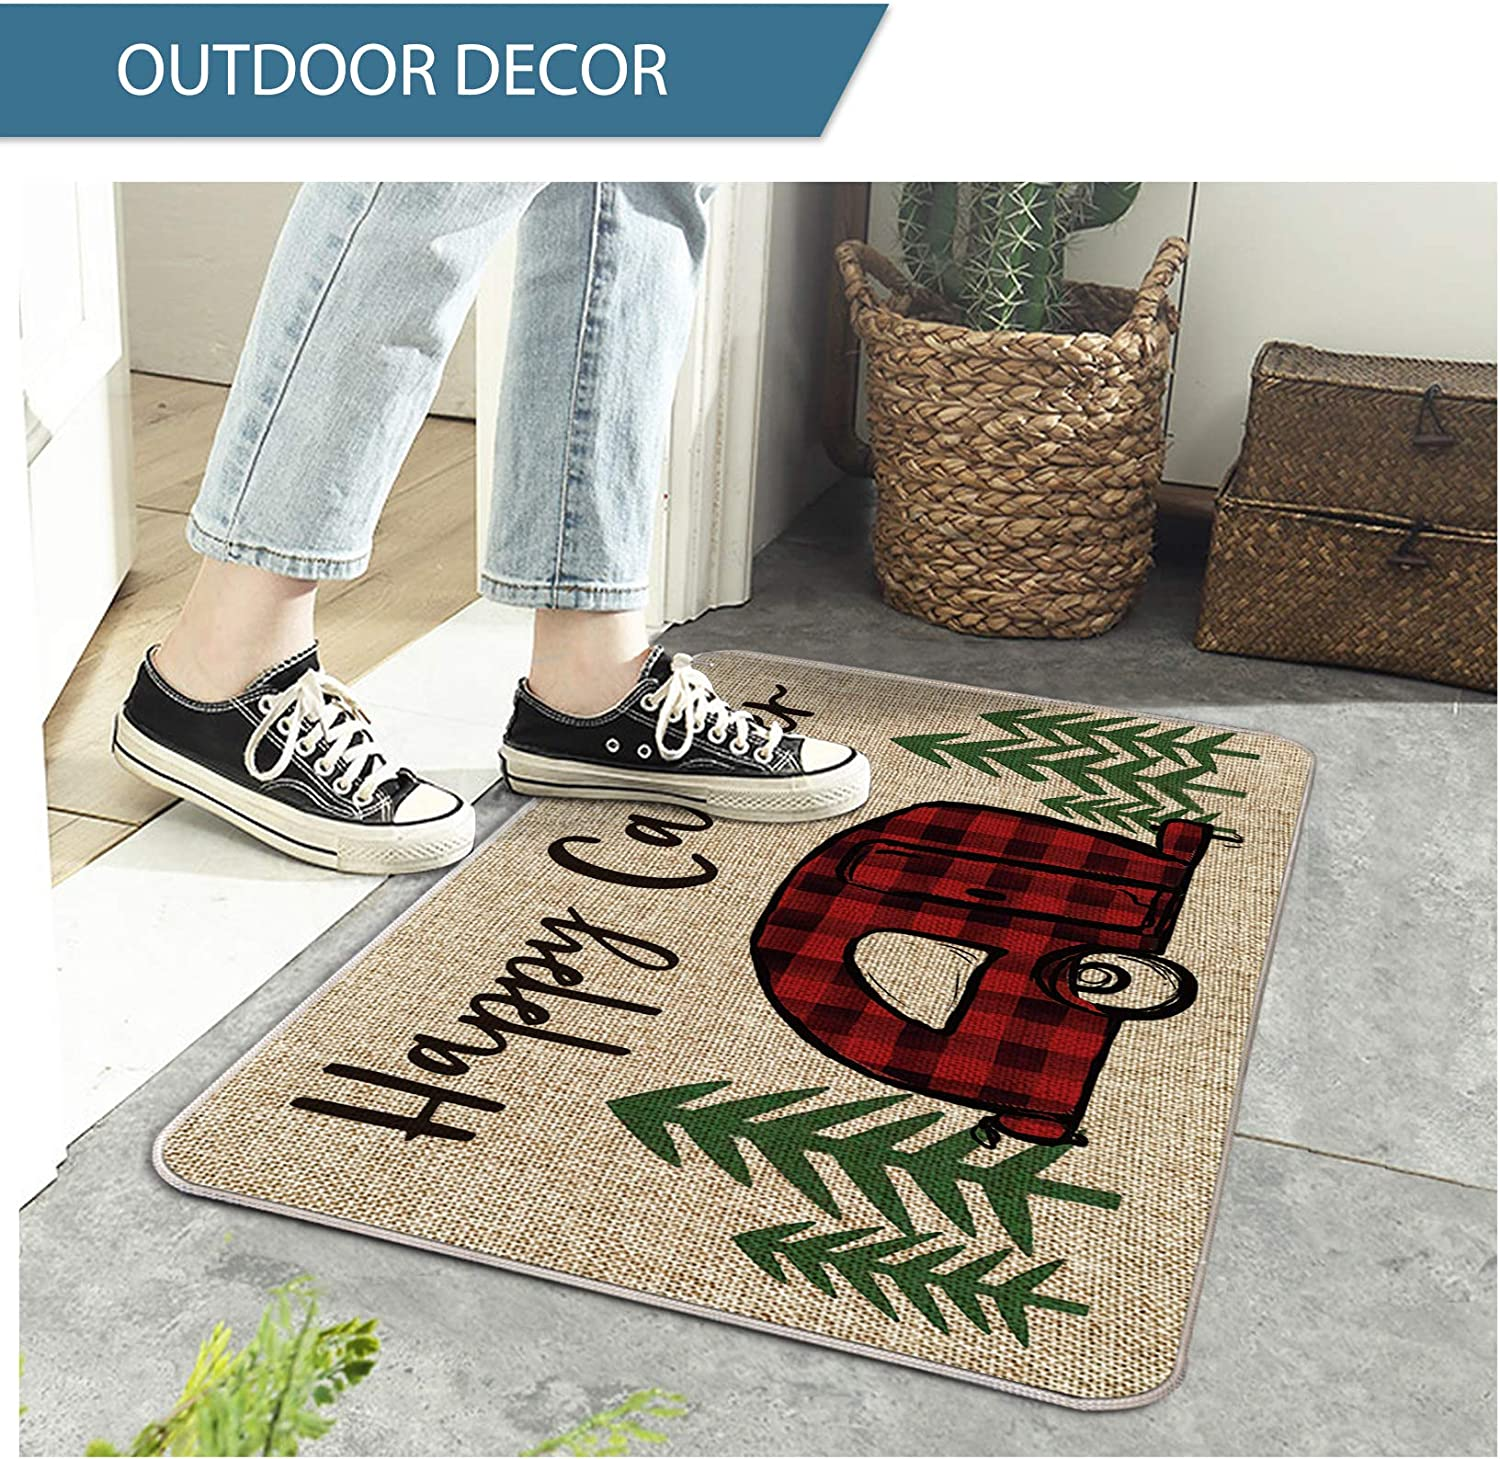 Seasonal Winter Camping Christmas Holiday Low-Profile Floor Mat Switch Mat for Indoor Outdoor 17 x 29 Inch Artoid Mode Buffalo Plaid Happy Camper Decorative Doormat